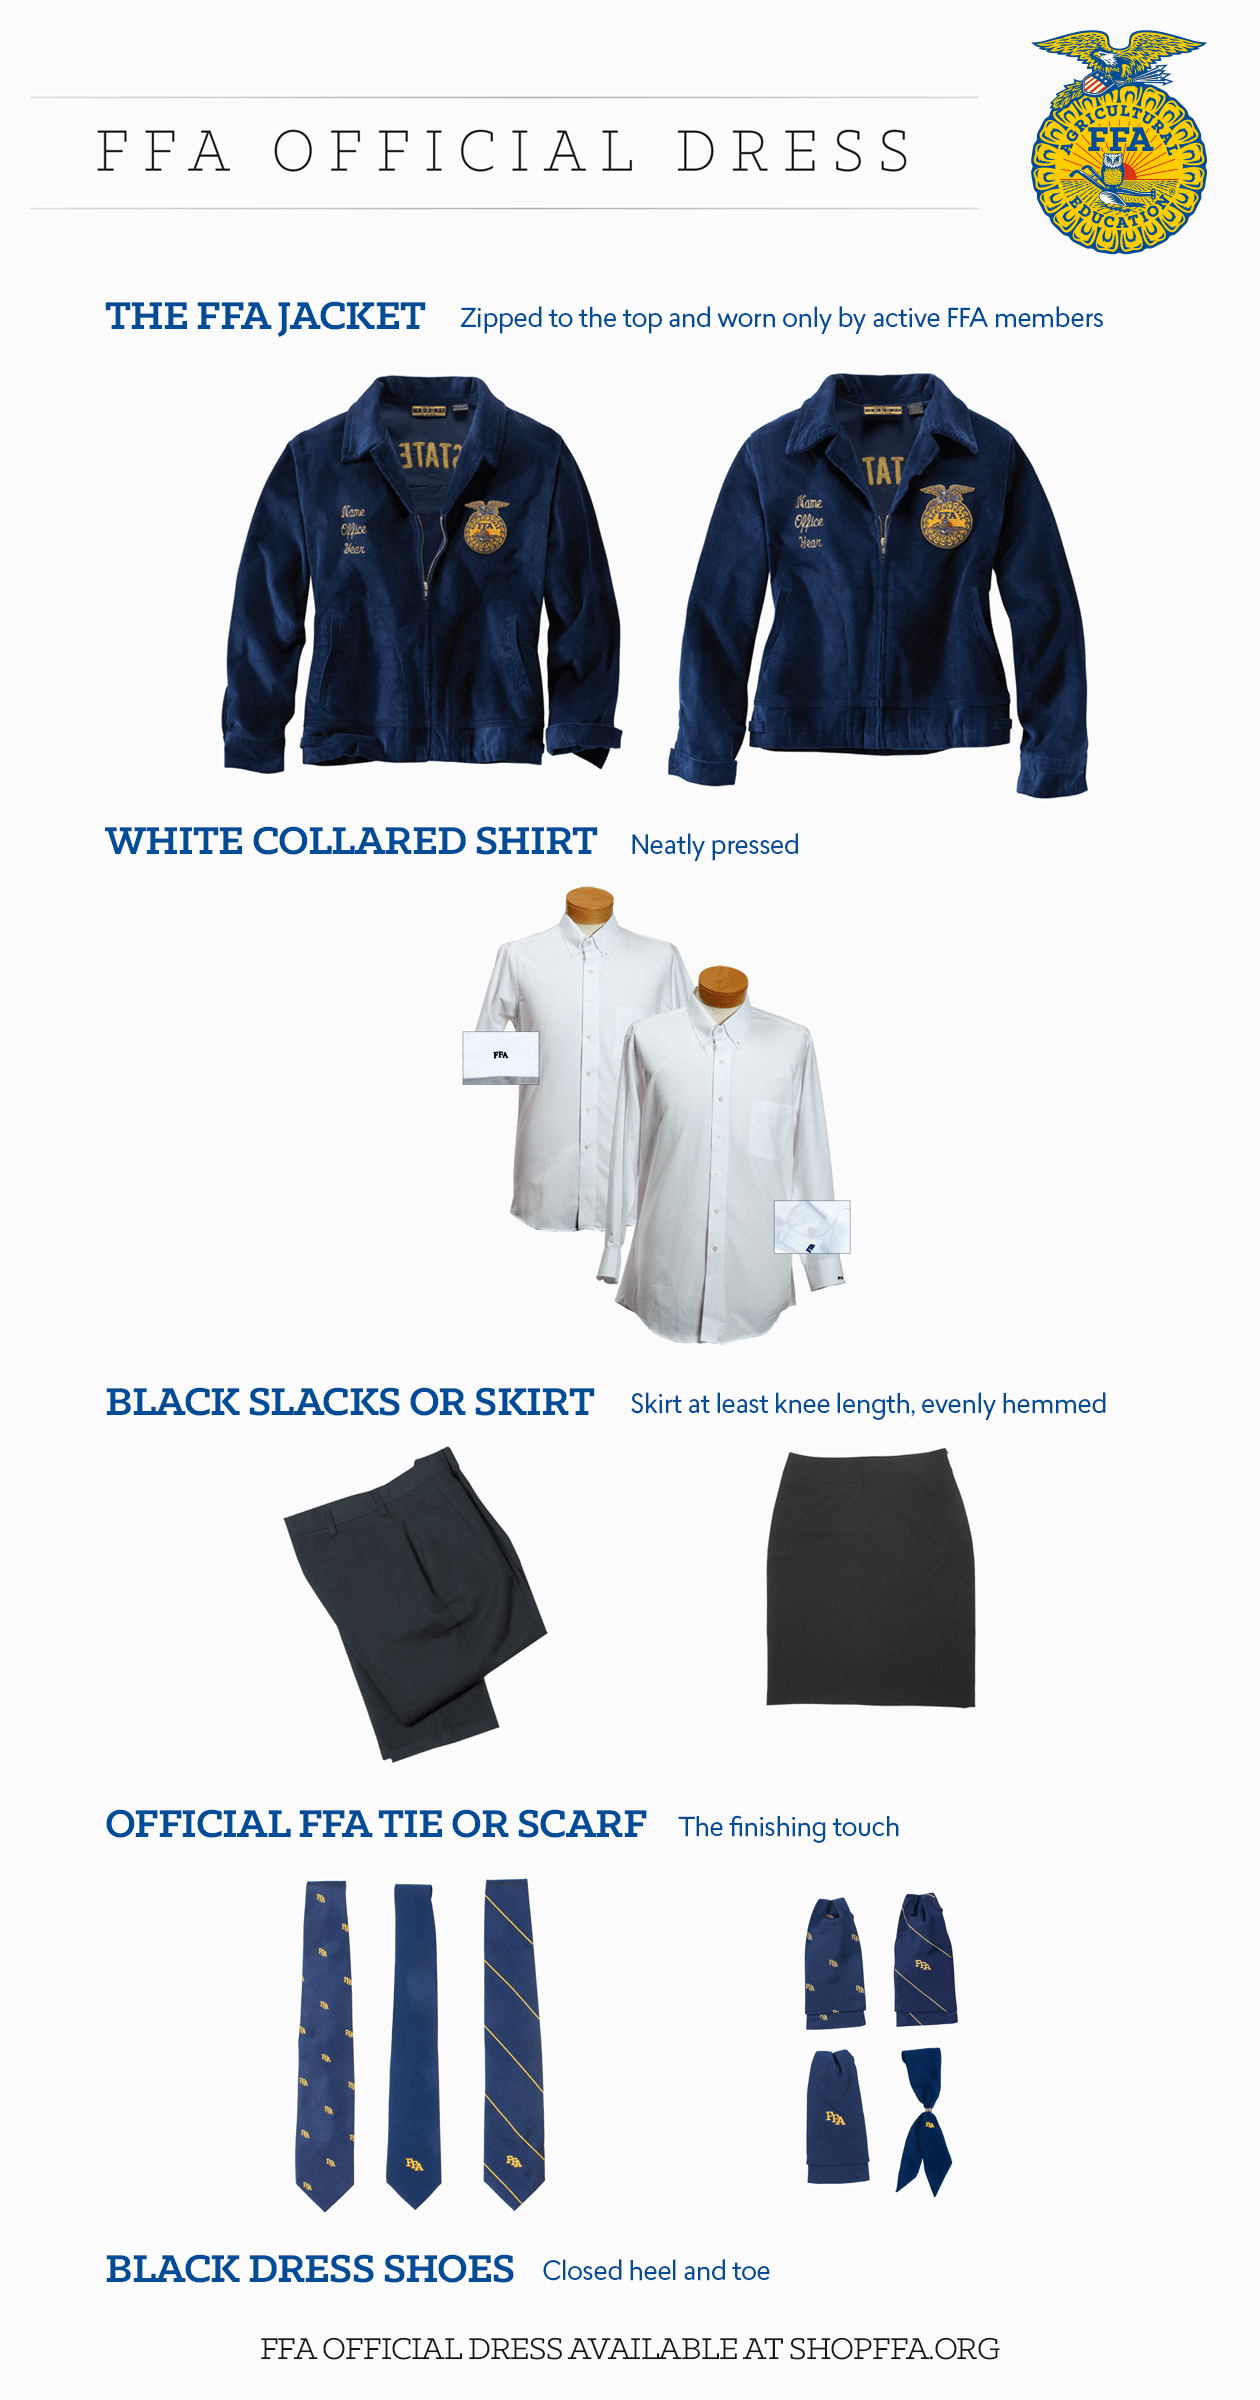 How To Wear Your Ffa Official Dress